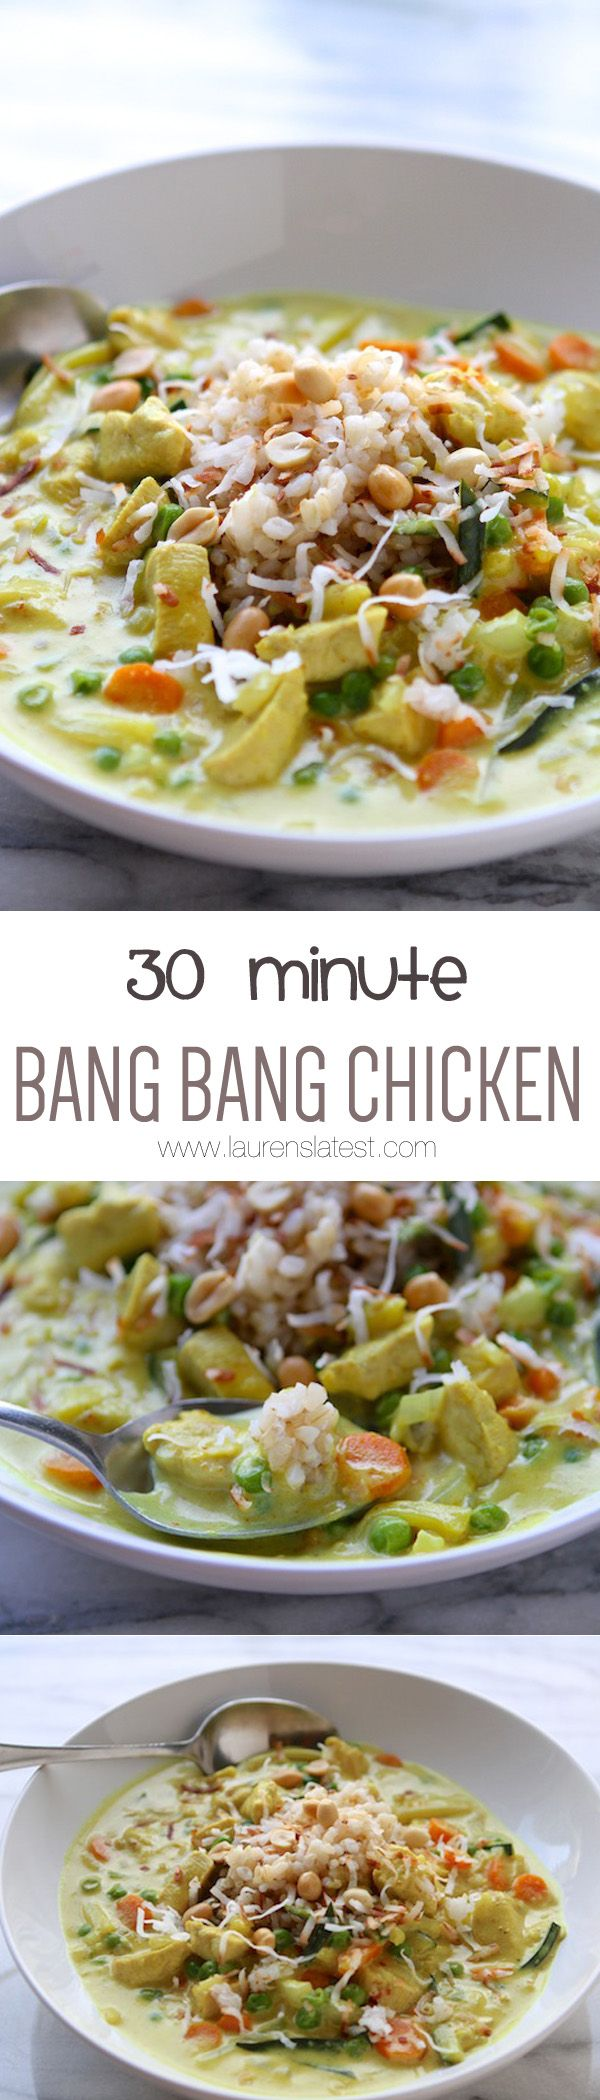 30 Minute Bang Bang Chicken... Awesome Cheesecake Factory Copycat Recipe!